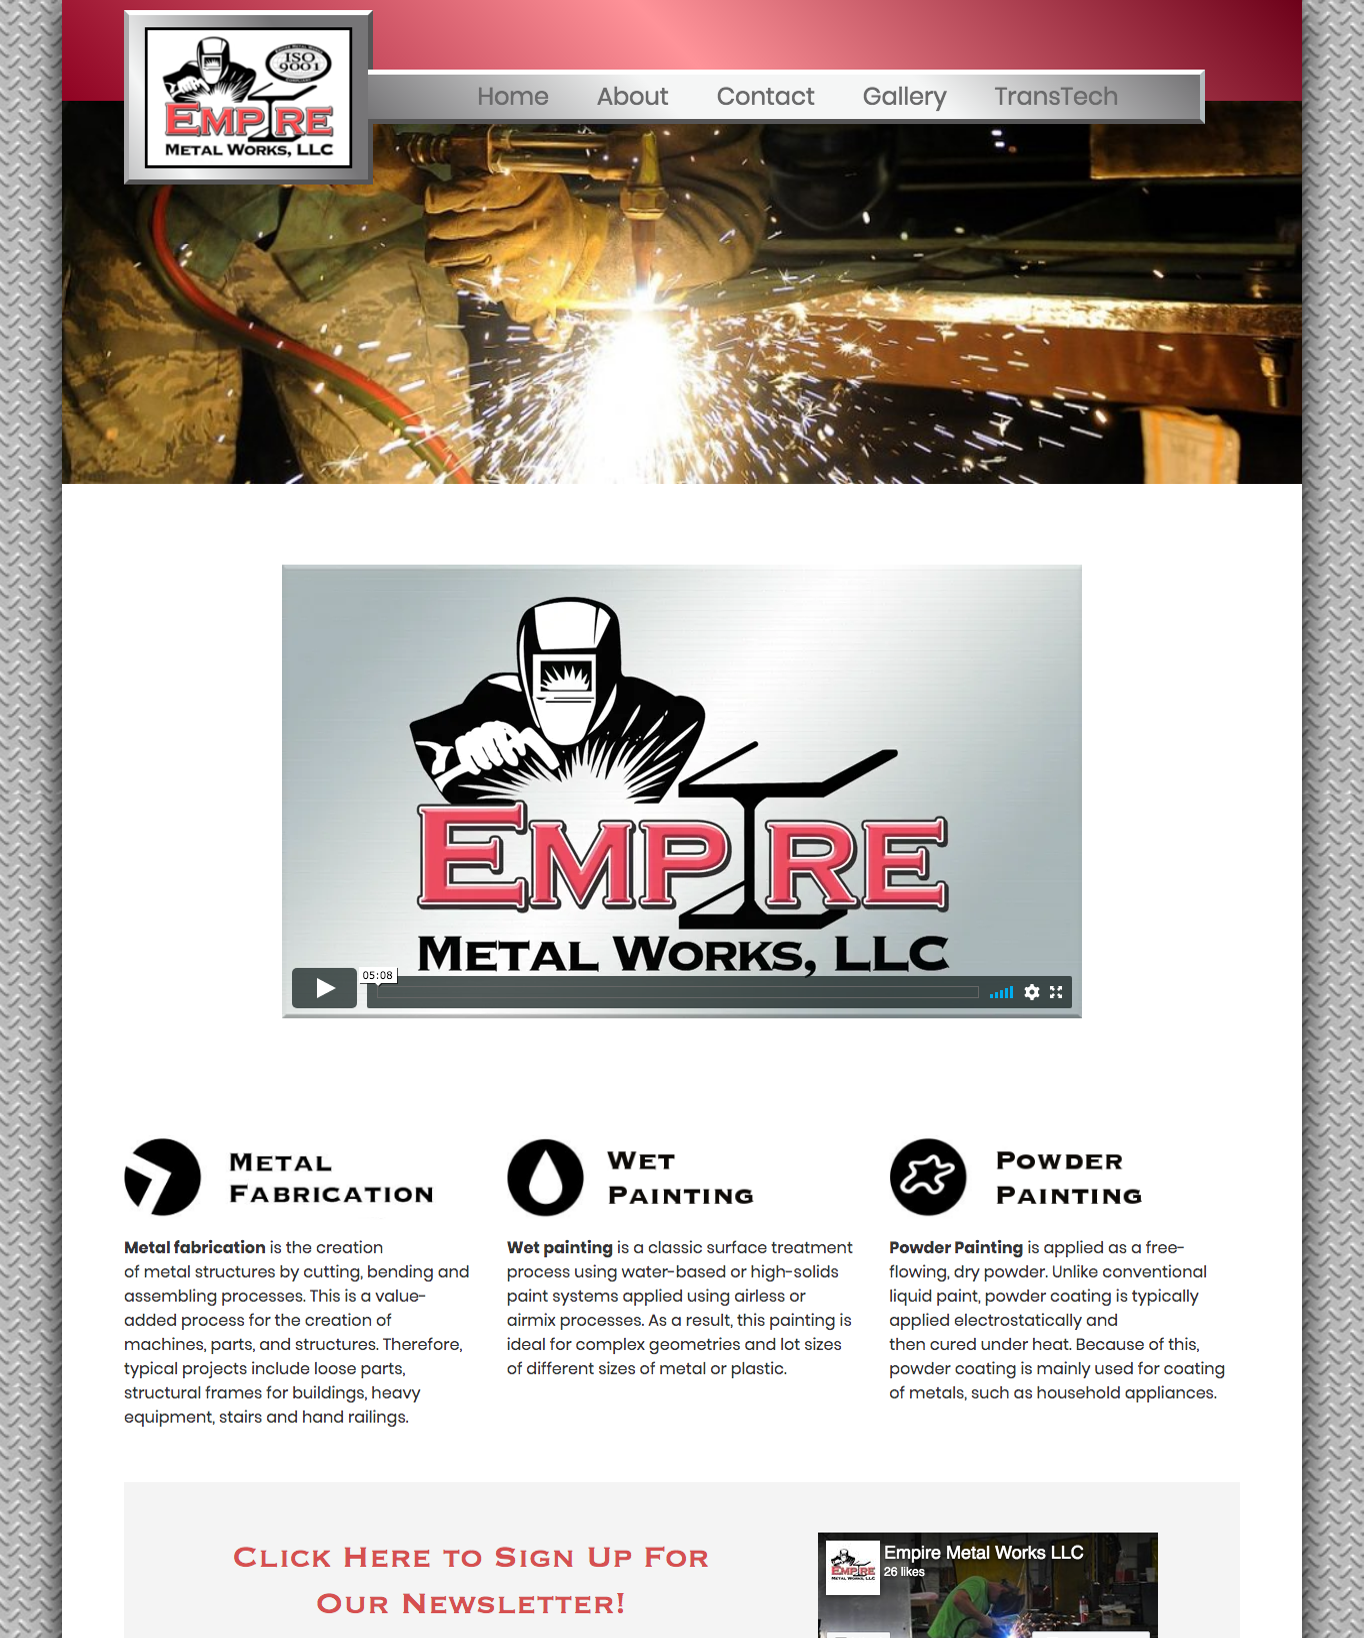 Empire Metalworks